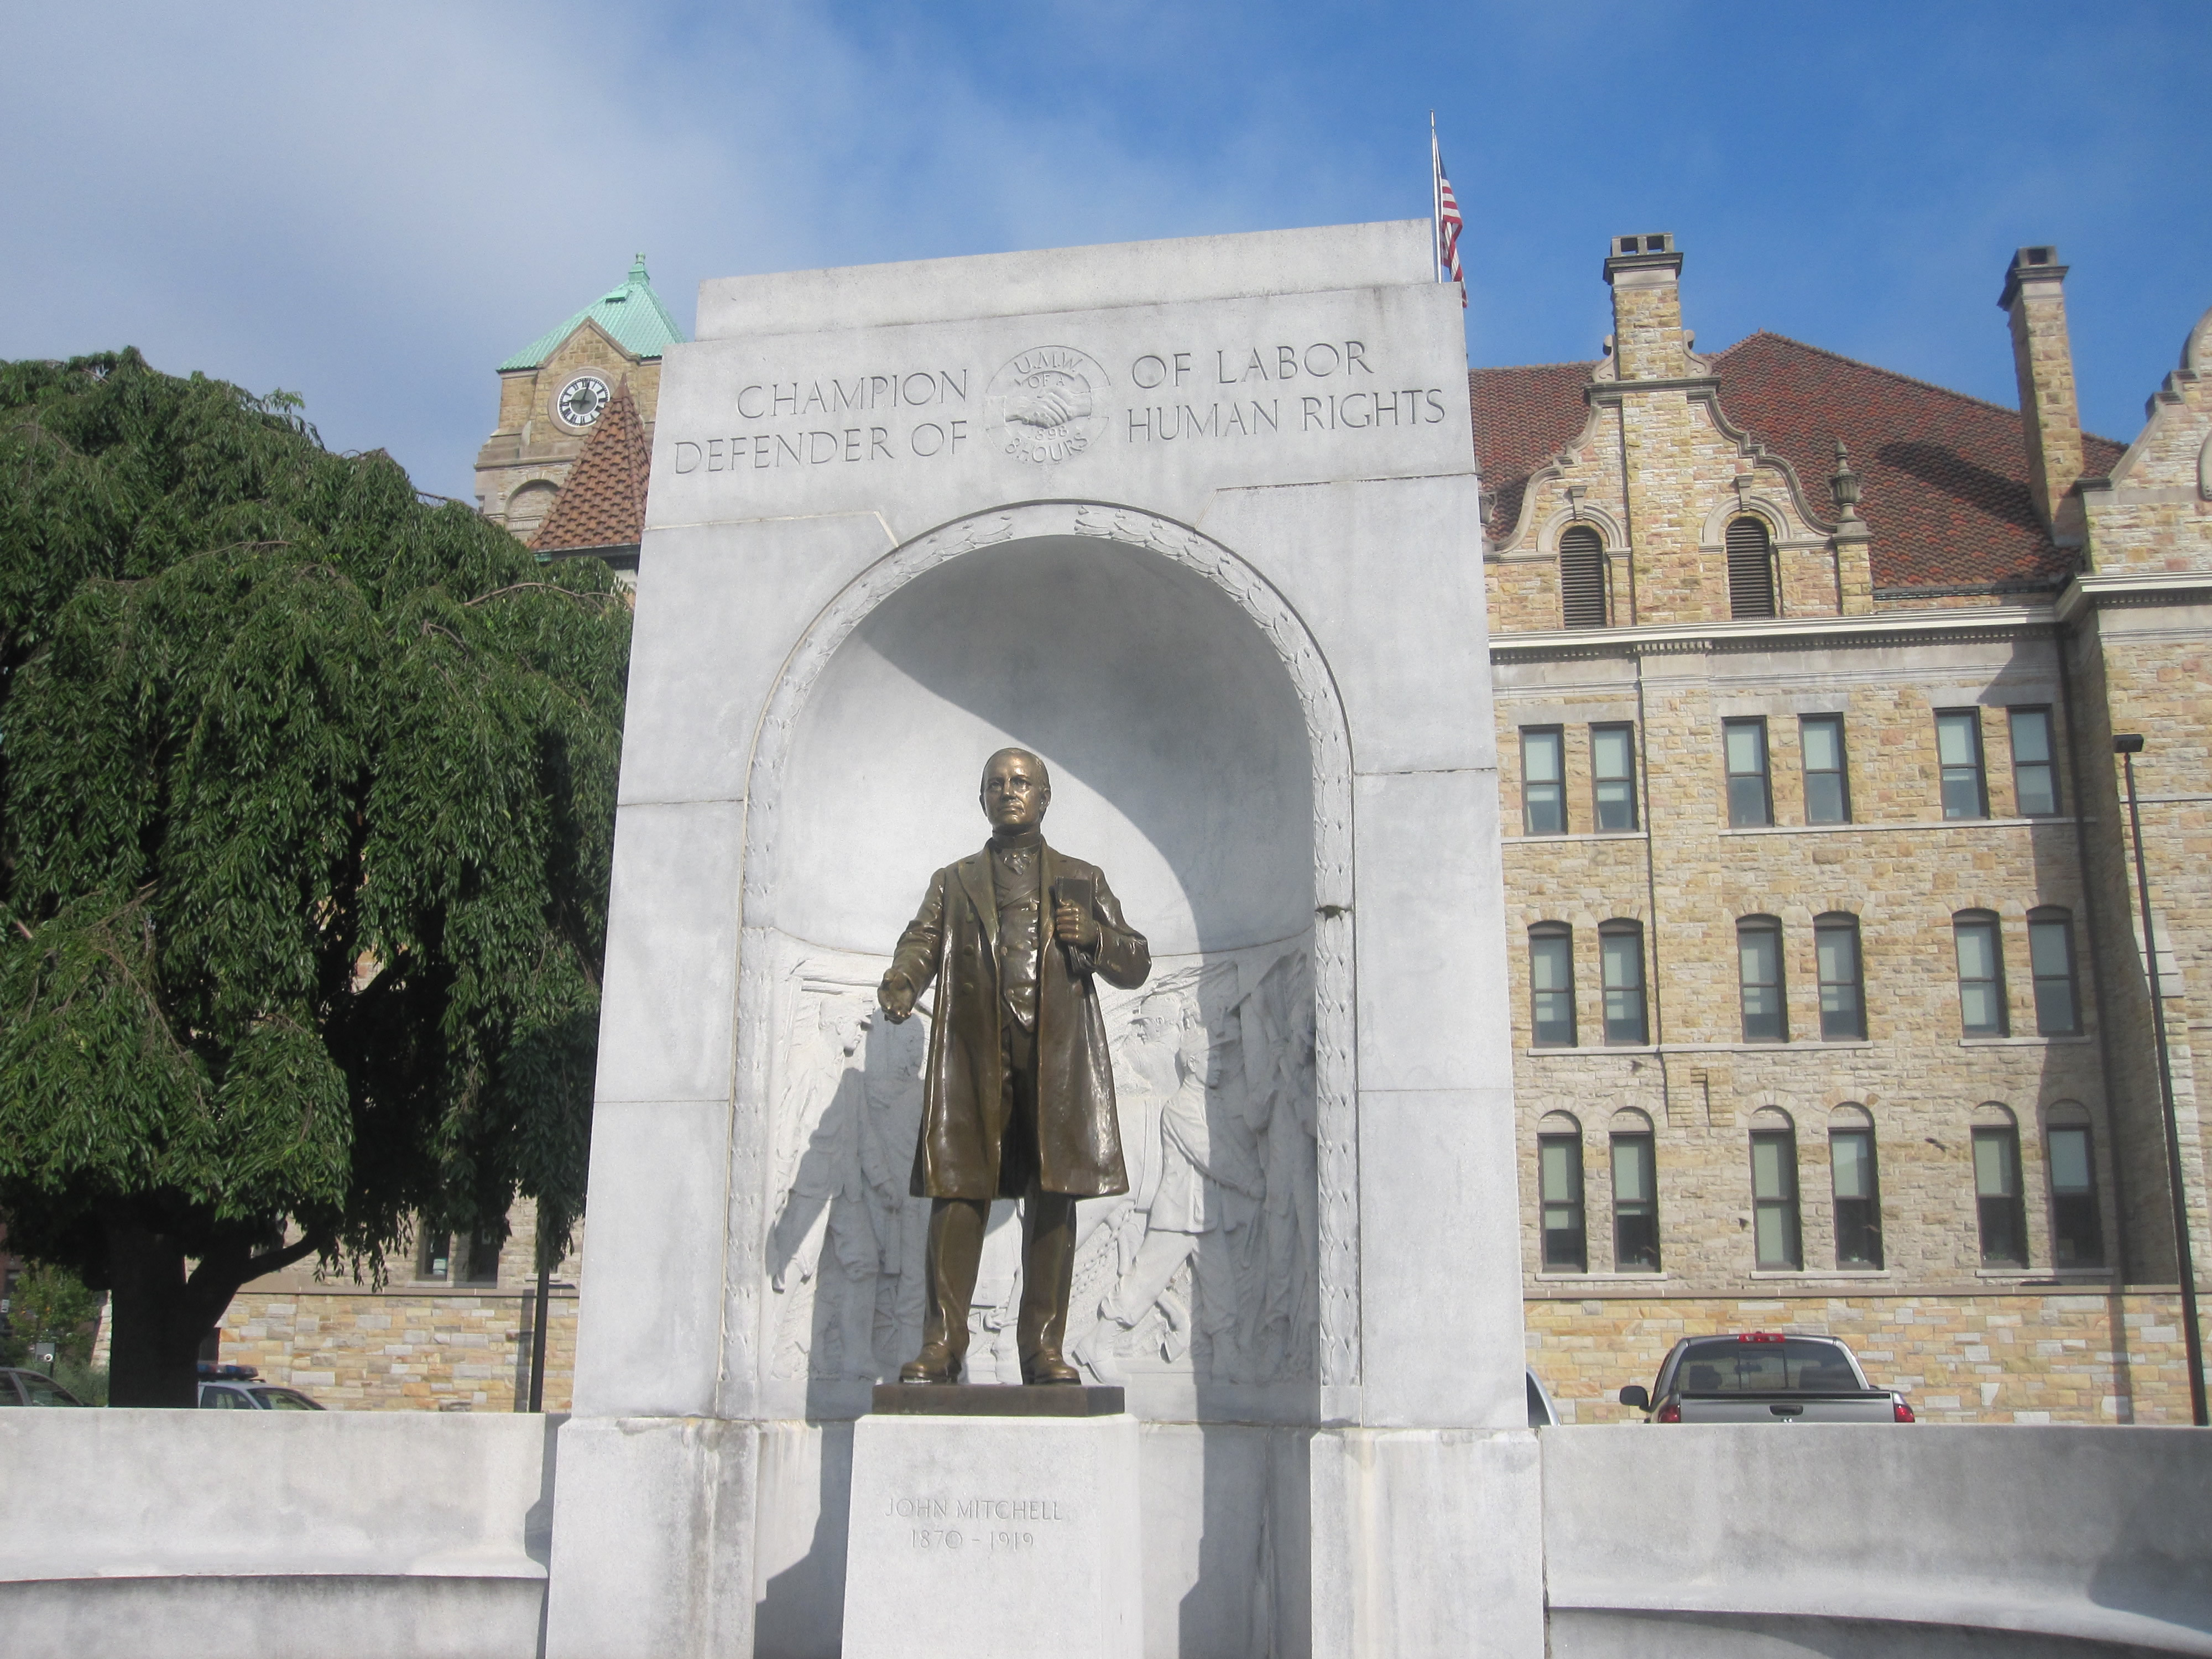 Monument to John Mitchell in Scranton